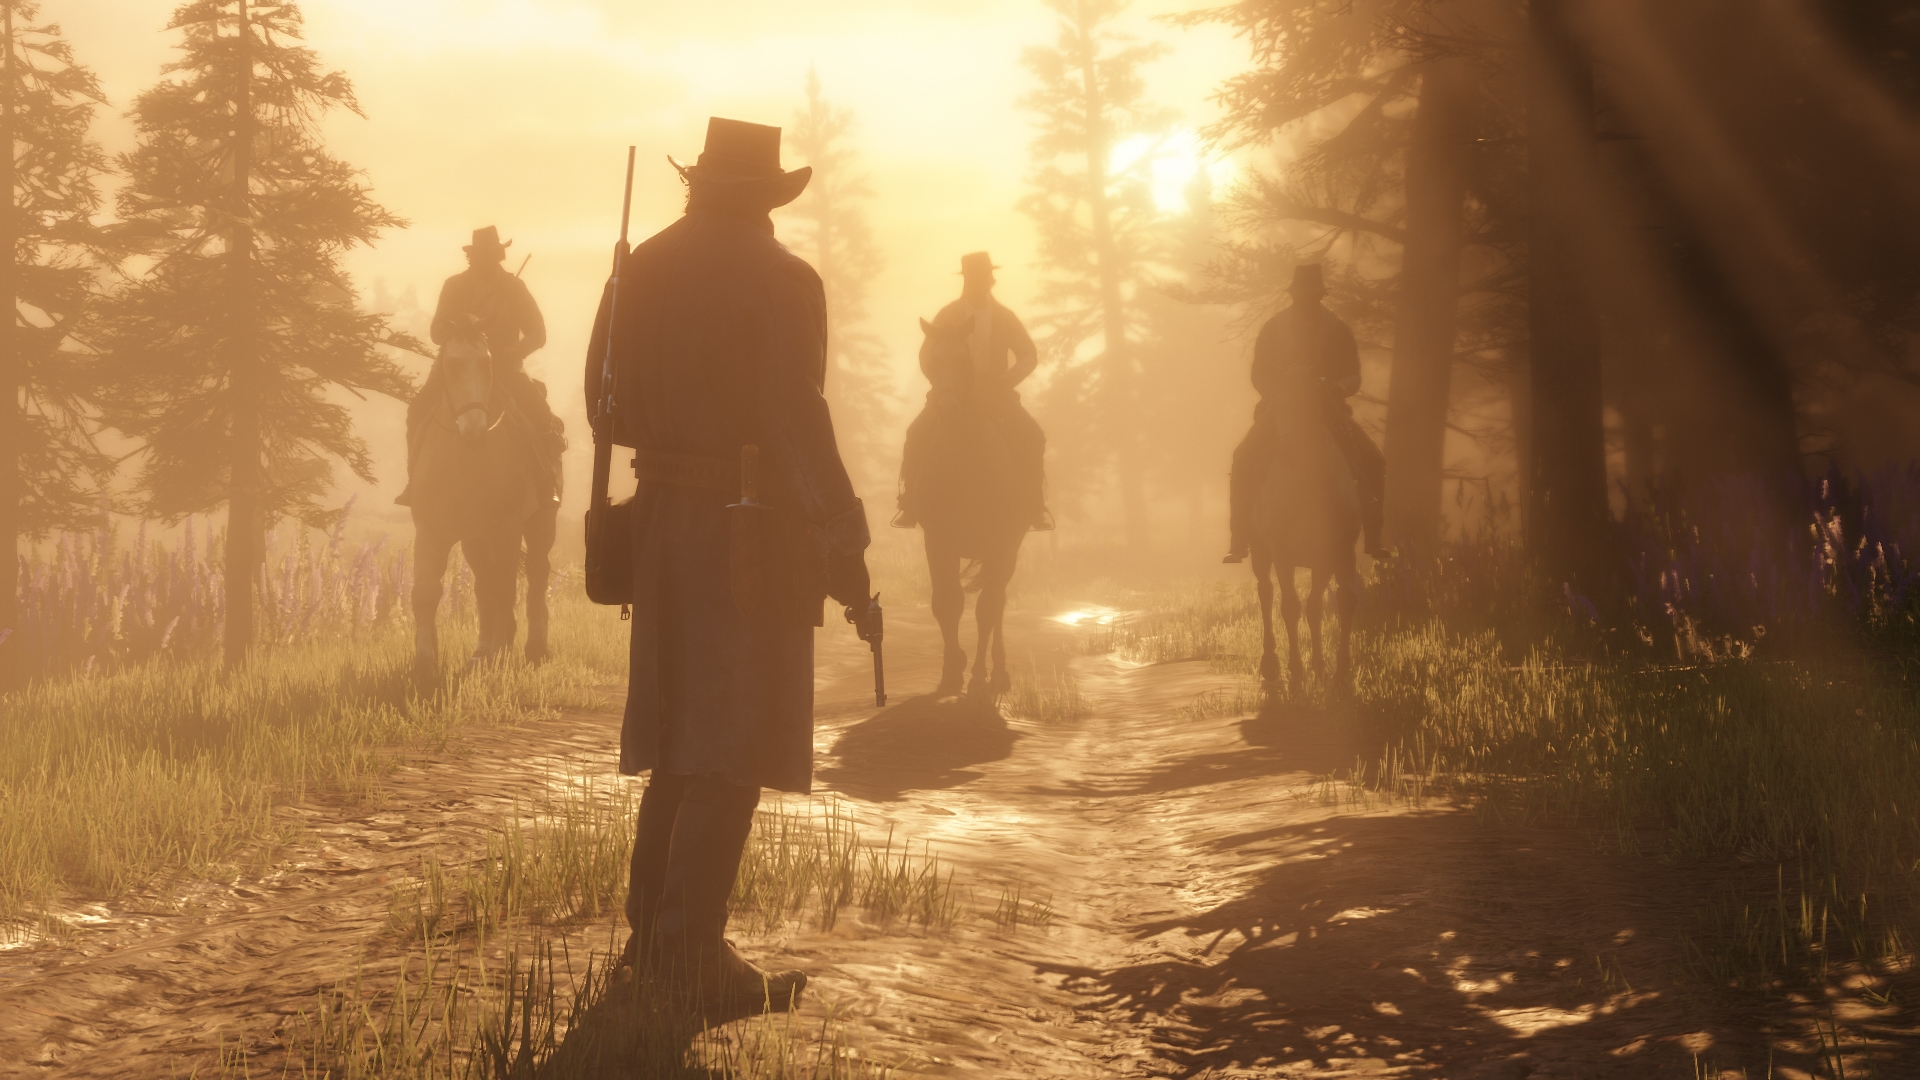 Red Dead Redemption 2 | PS4/X1 | 10/26/2018 Bb98bc168c6a89180a326def291efeff23f6bb51